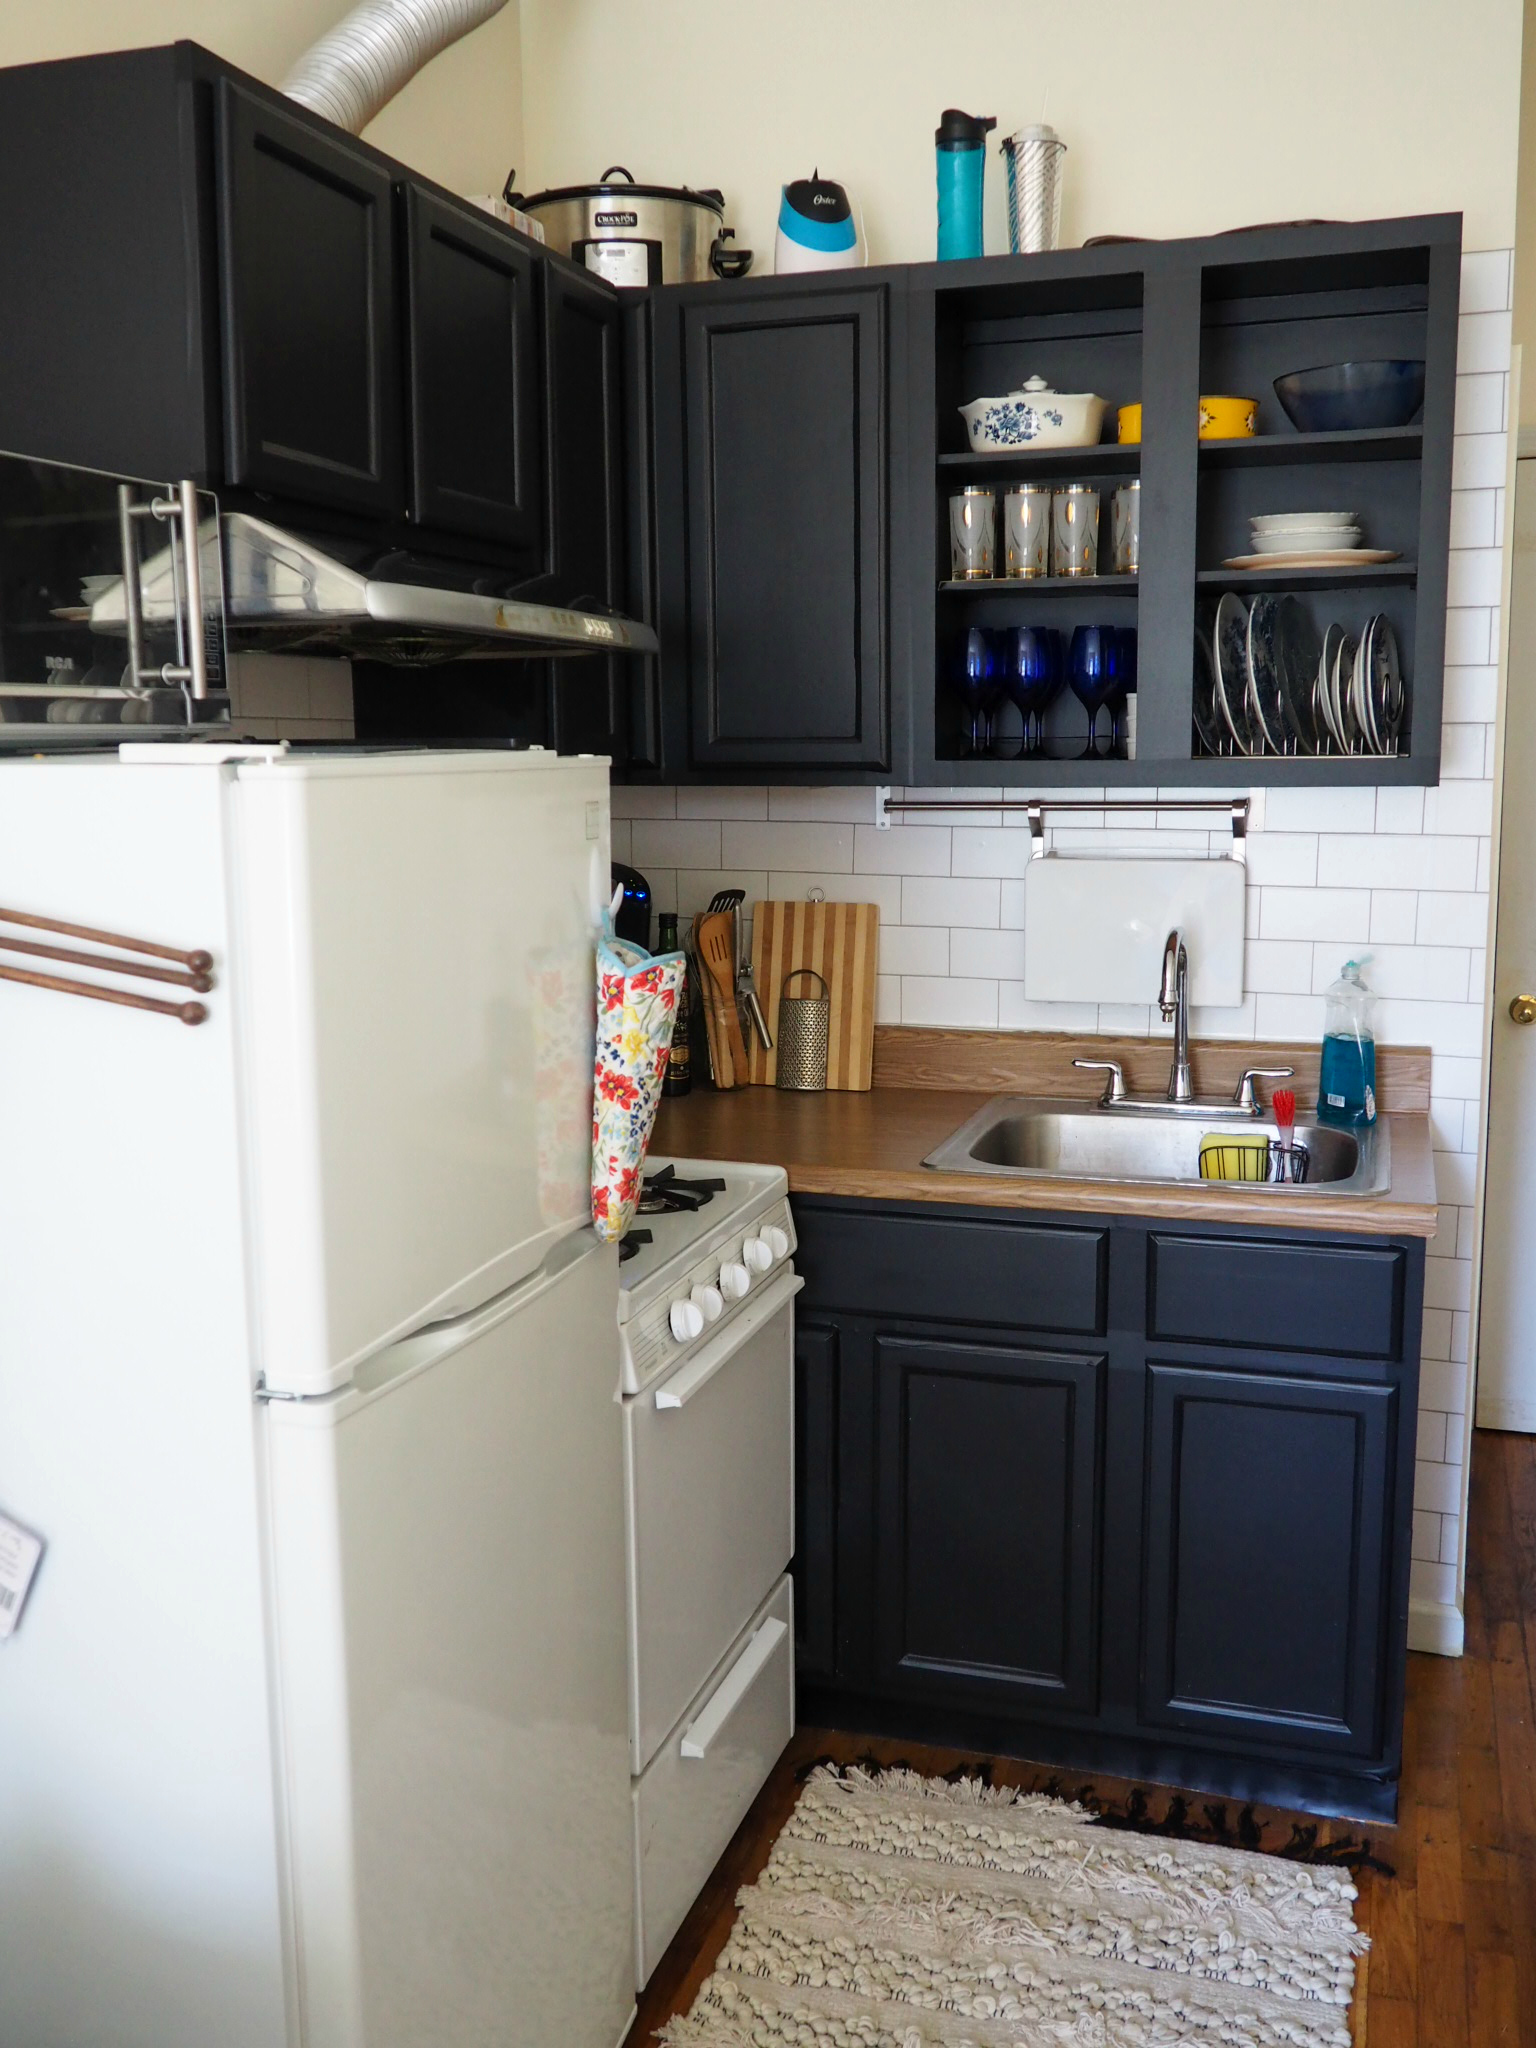 Diy Contact Paper Kitchen Update Part 1 Cabinets Roaming Home